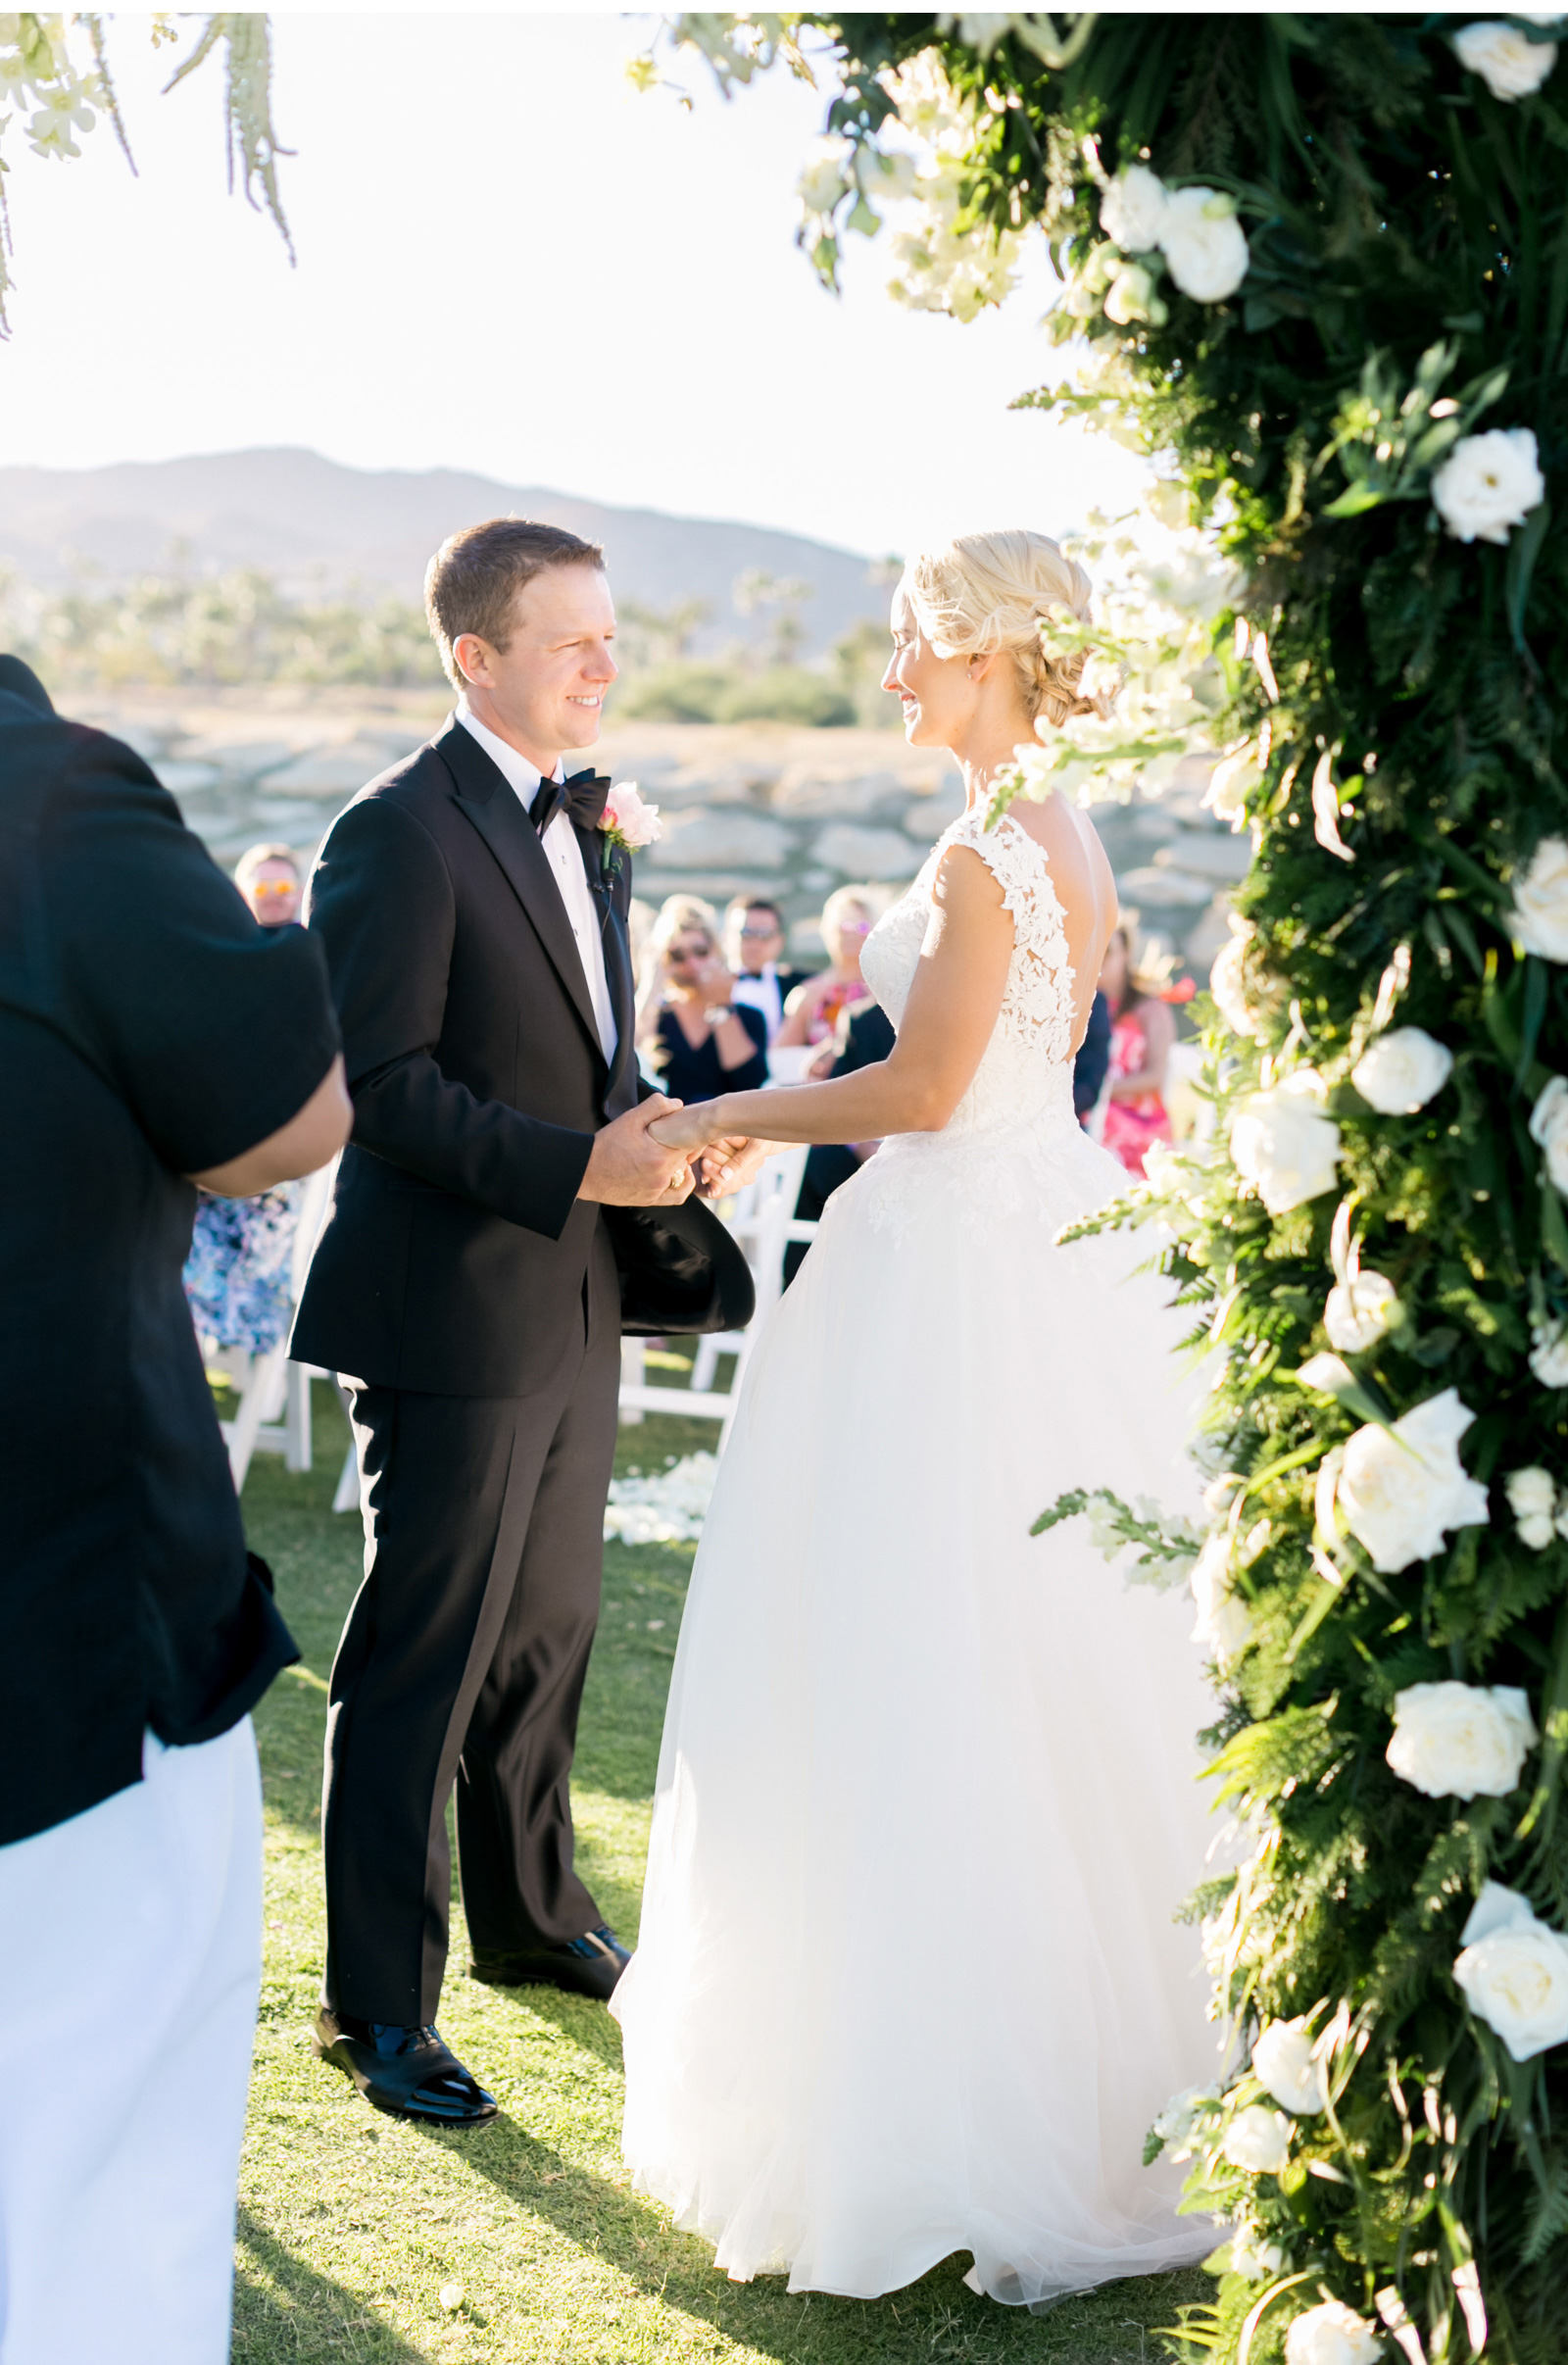 Style-Me-Pretty-Cabo-Wedding-Natalie-Schutt-Photography_05.jpg